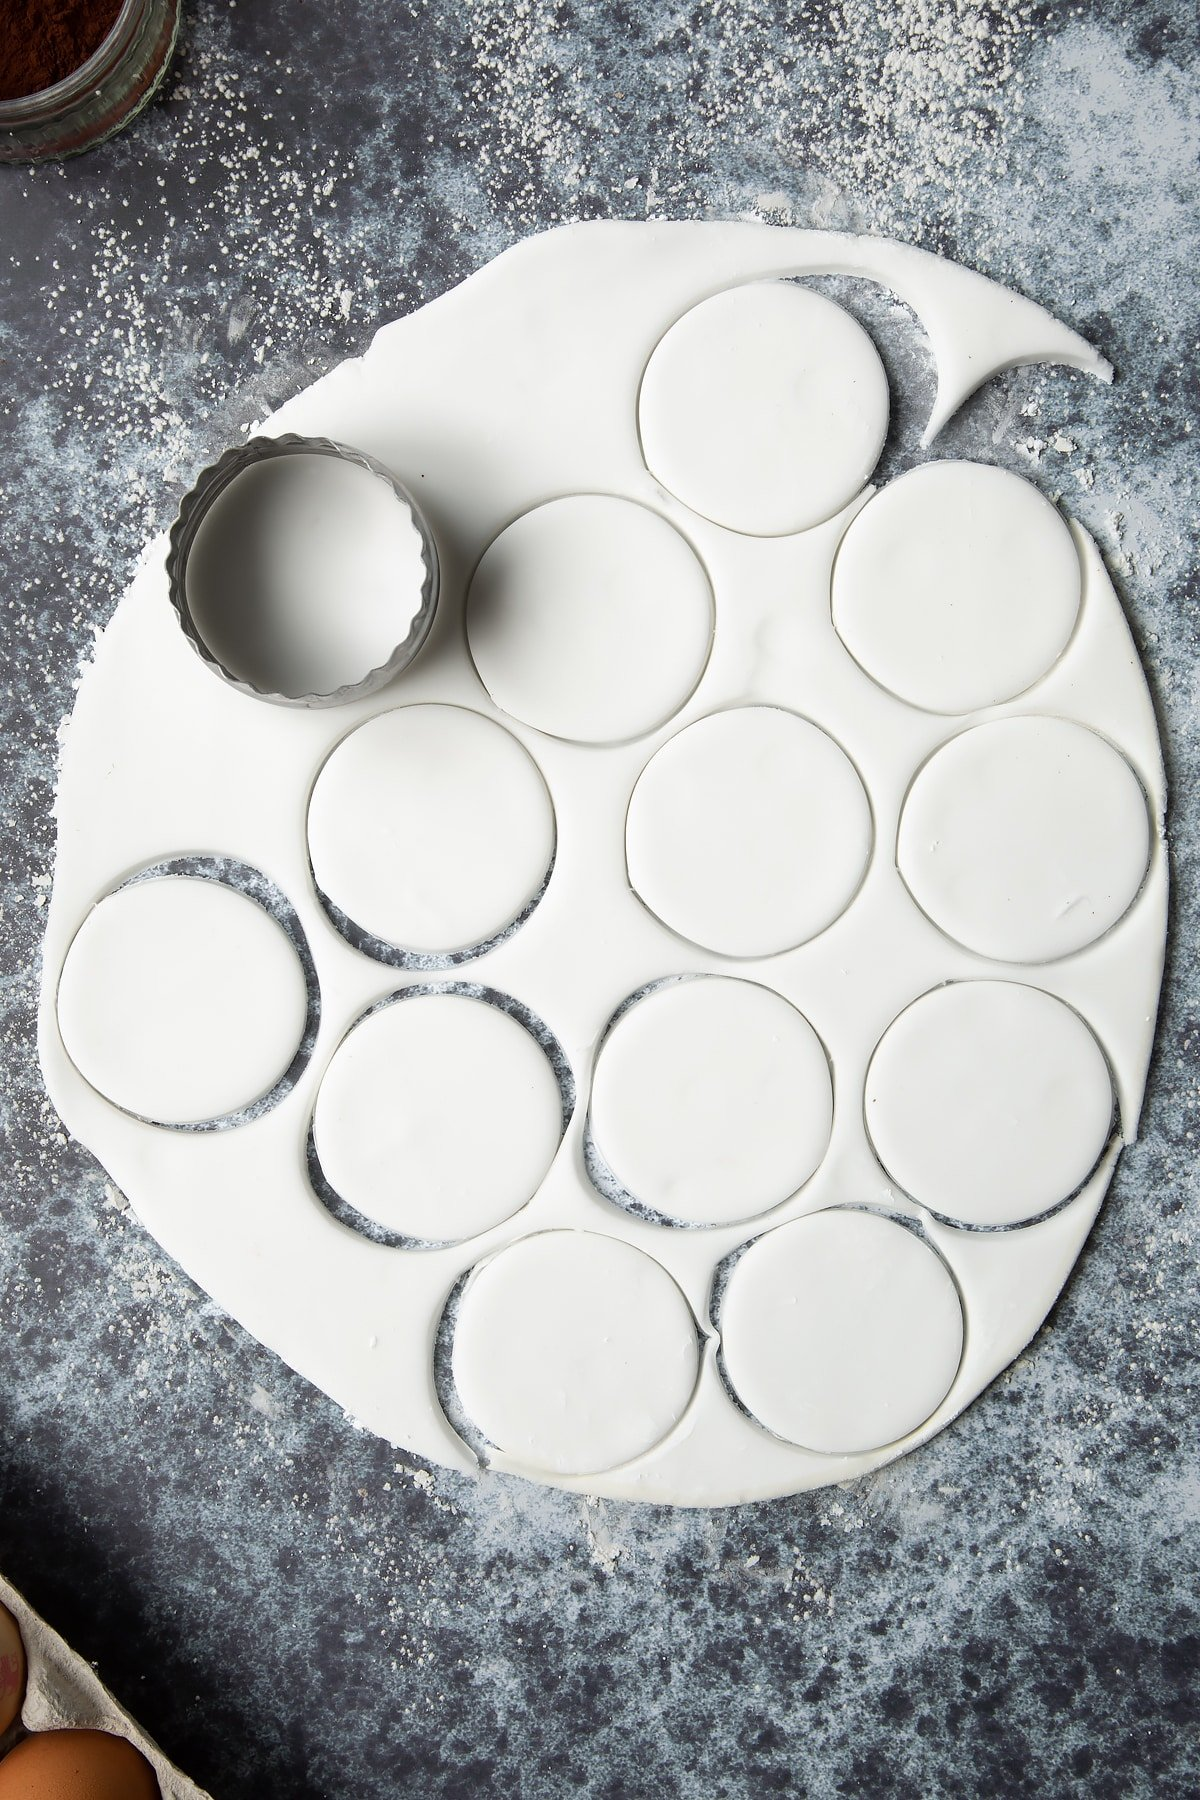 White sugar paste rolled out on a cornflour dusted surface. 12 discs have been cut from it.